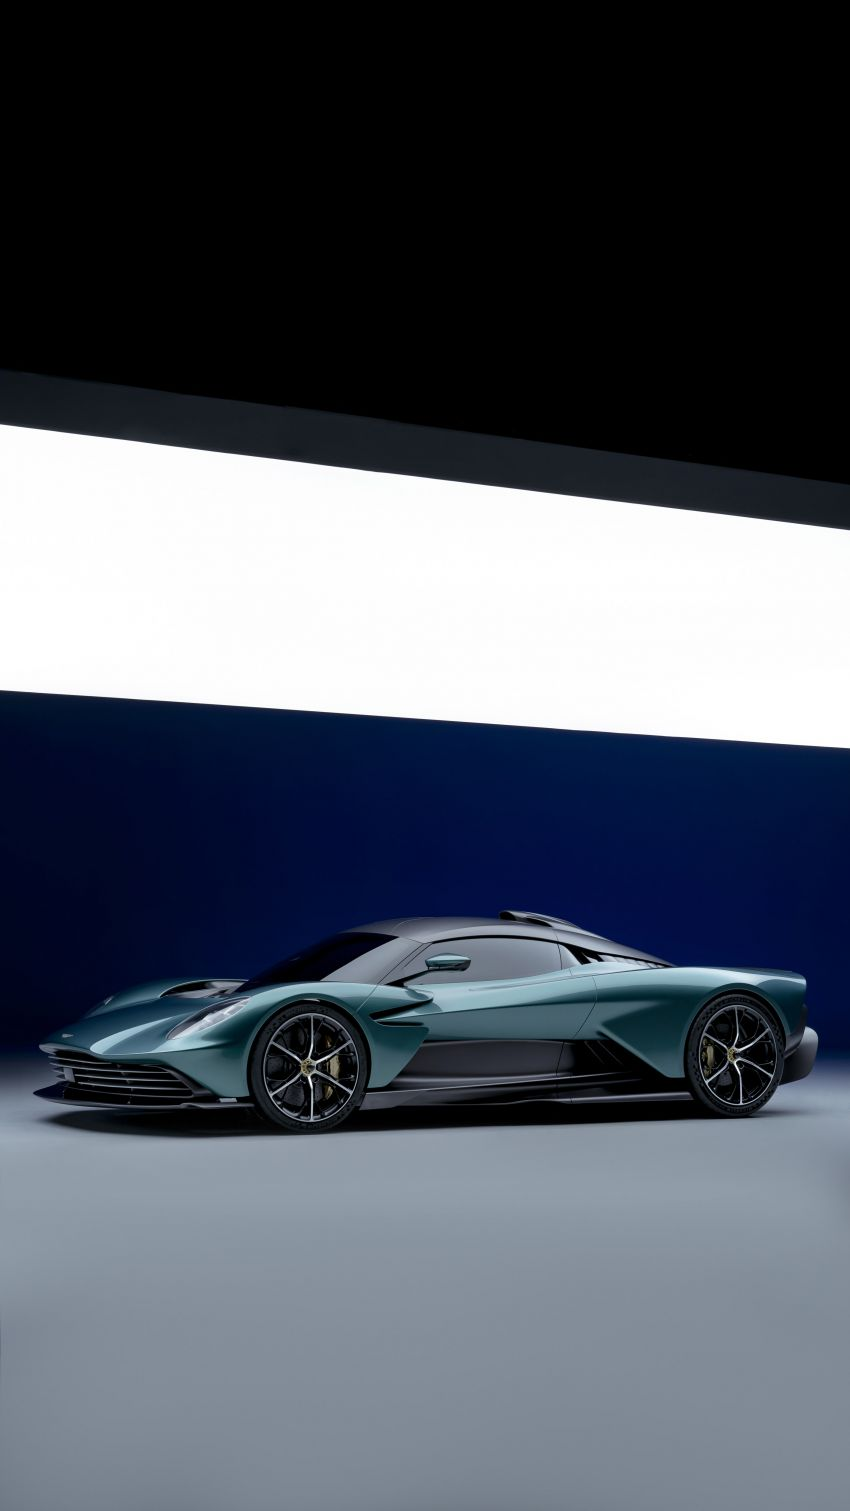 Aston Martin Valhalla debuts in production form – 4.0L twin-turbo V8 PHEV making 950 PS and 1,000 Nm Image #1319946